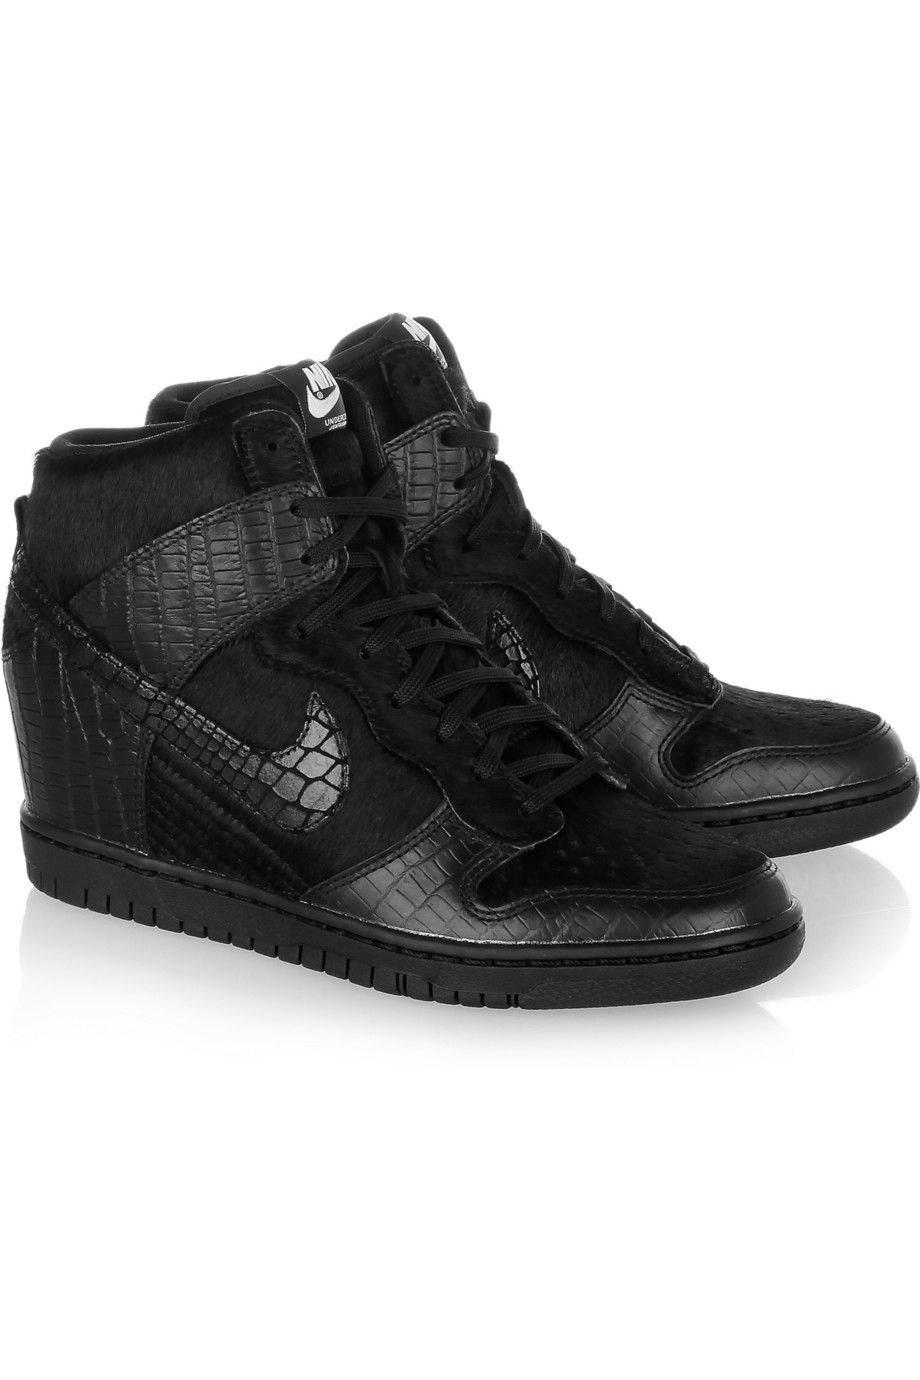 Nike + Leather Undercover Dunk Sky Hi Leather + And Faux Calf Hair Chaussuress 242905